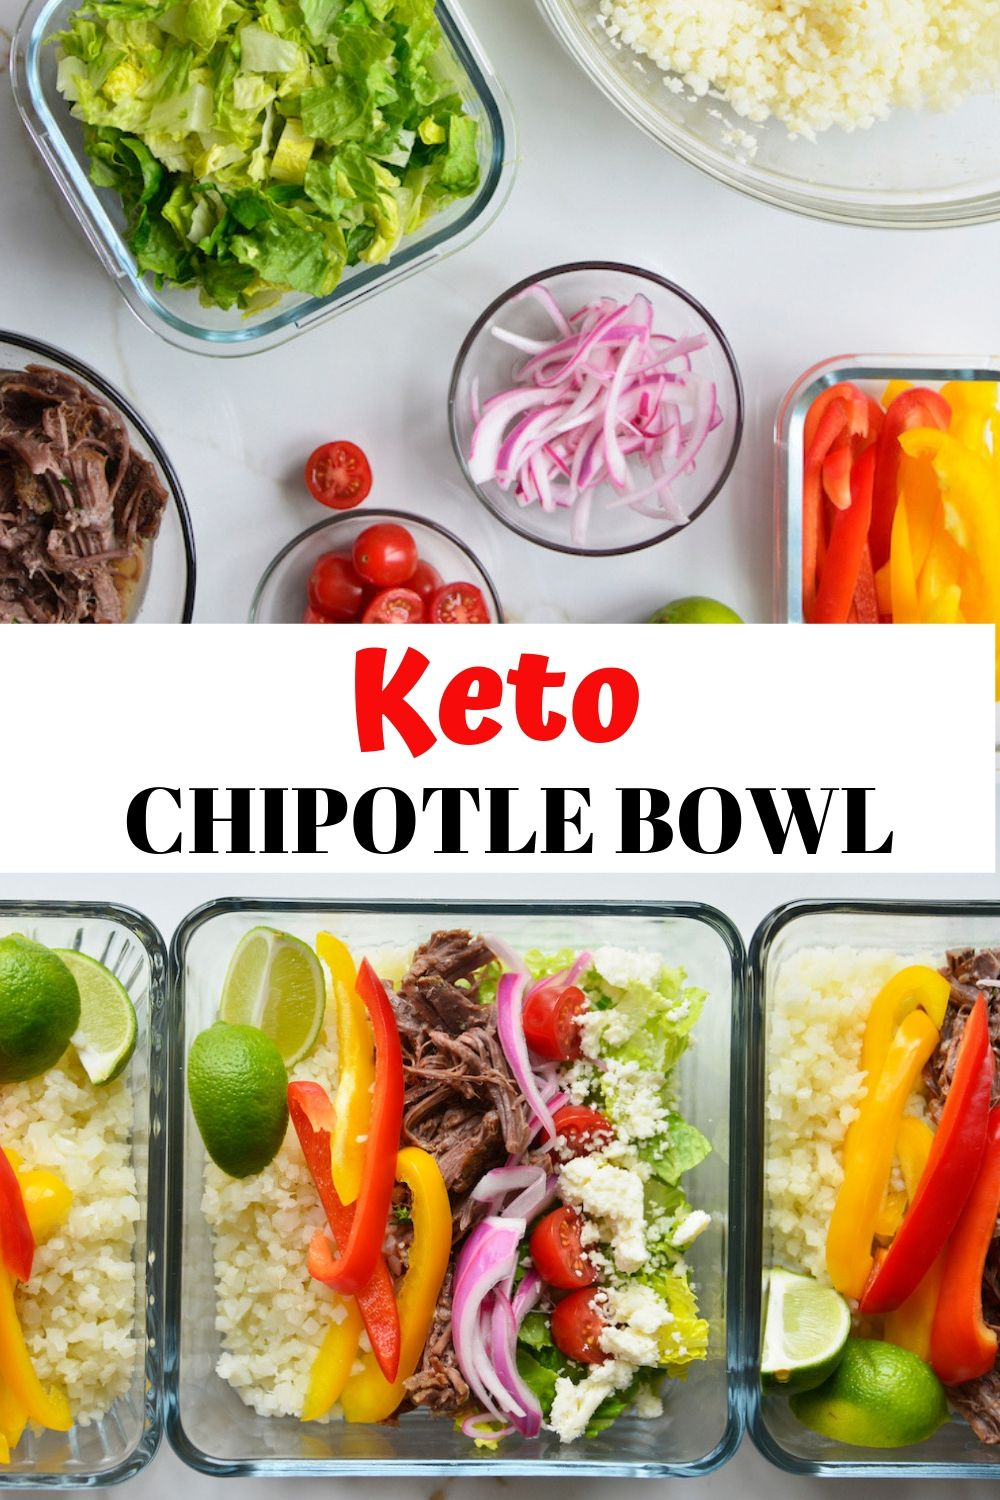 A step by step guide to making your favorite Keto Chipotle Burrito Bowl. These homemade Chipotle Bowls are great for meal prep!#mealprep #ketomealprep